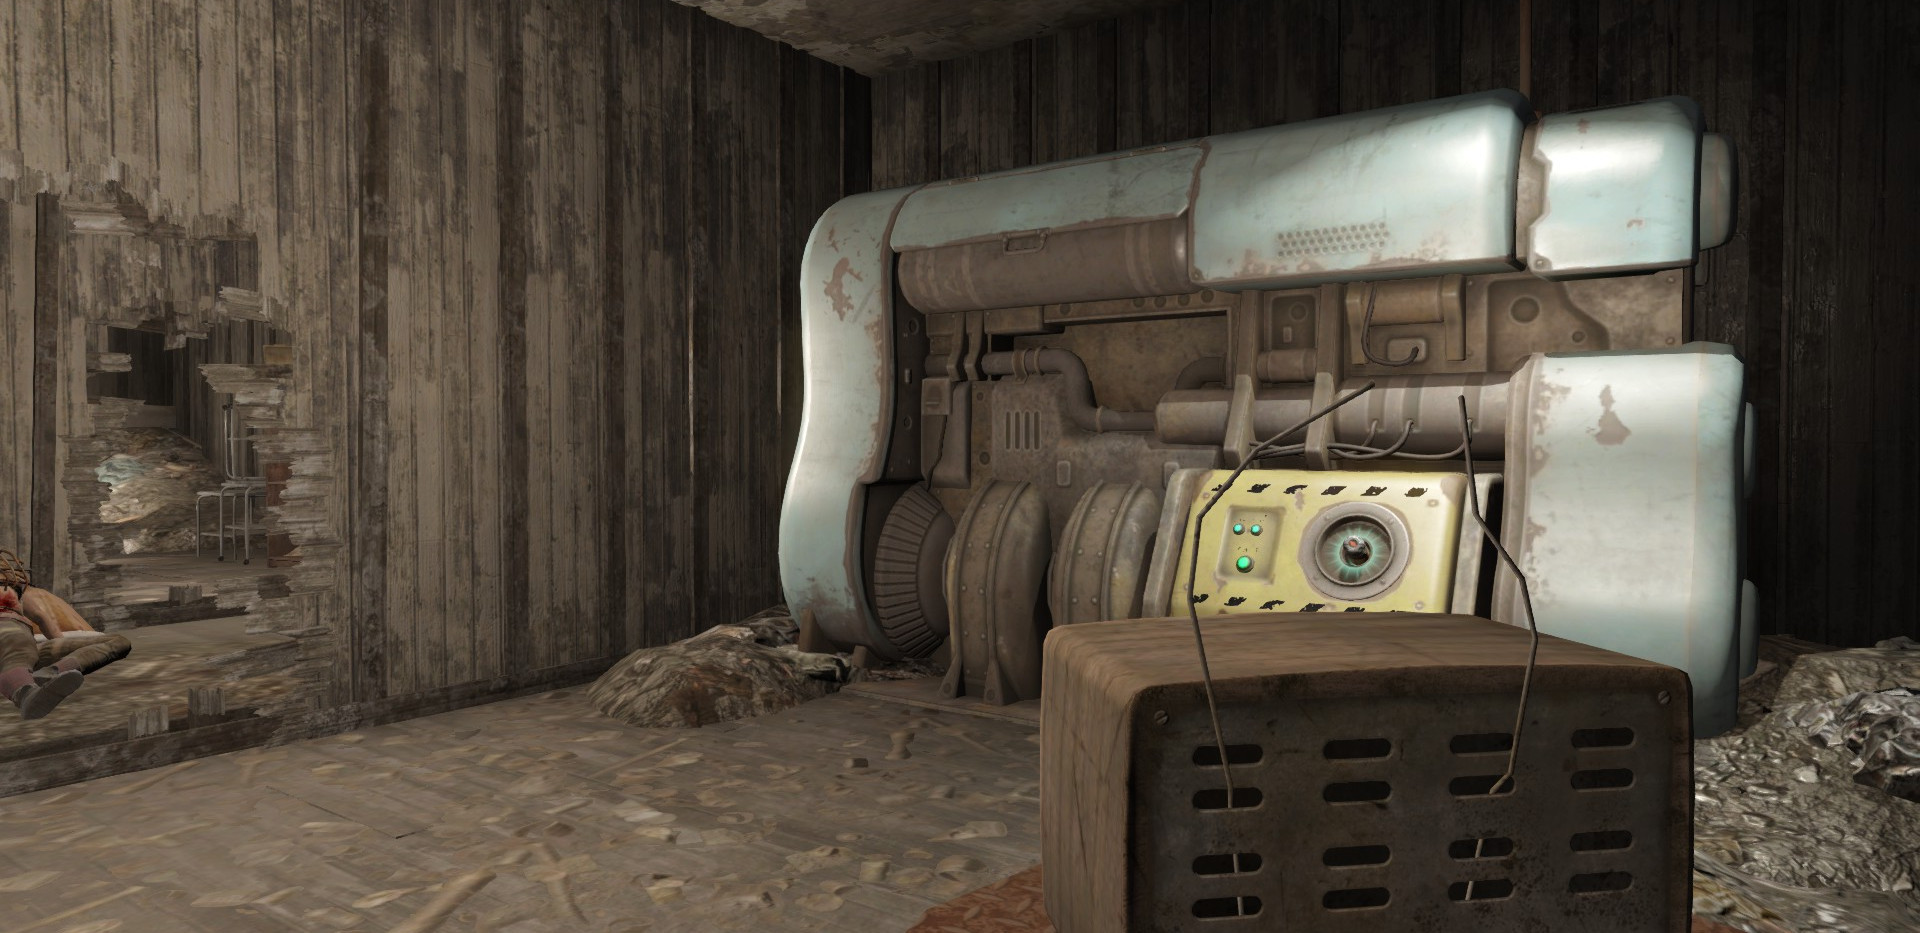 Power generator in raider shack